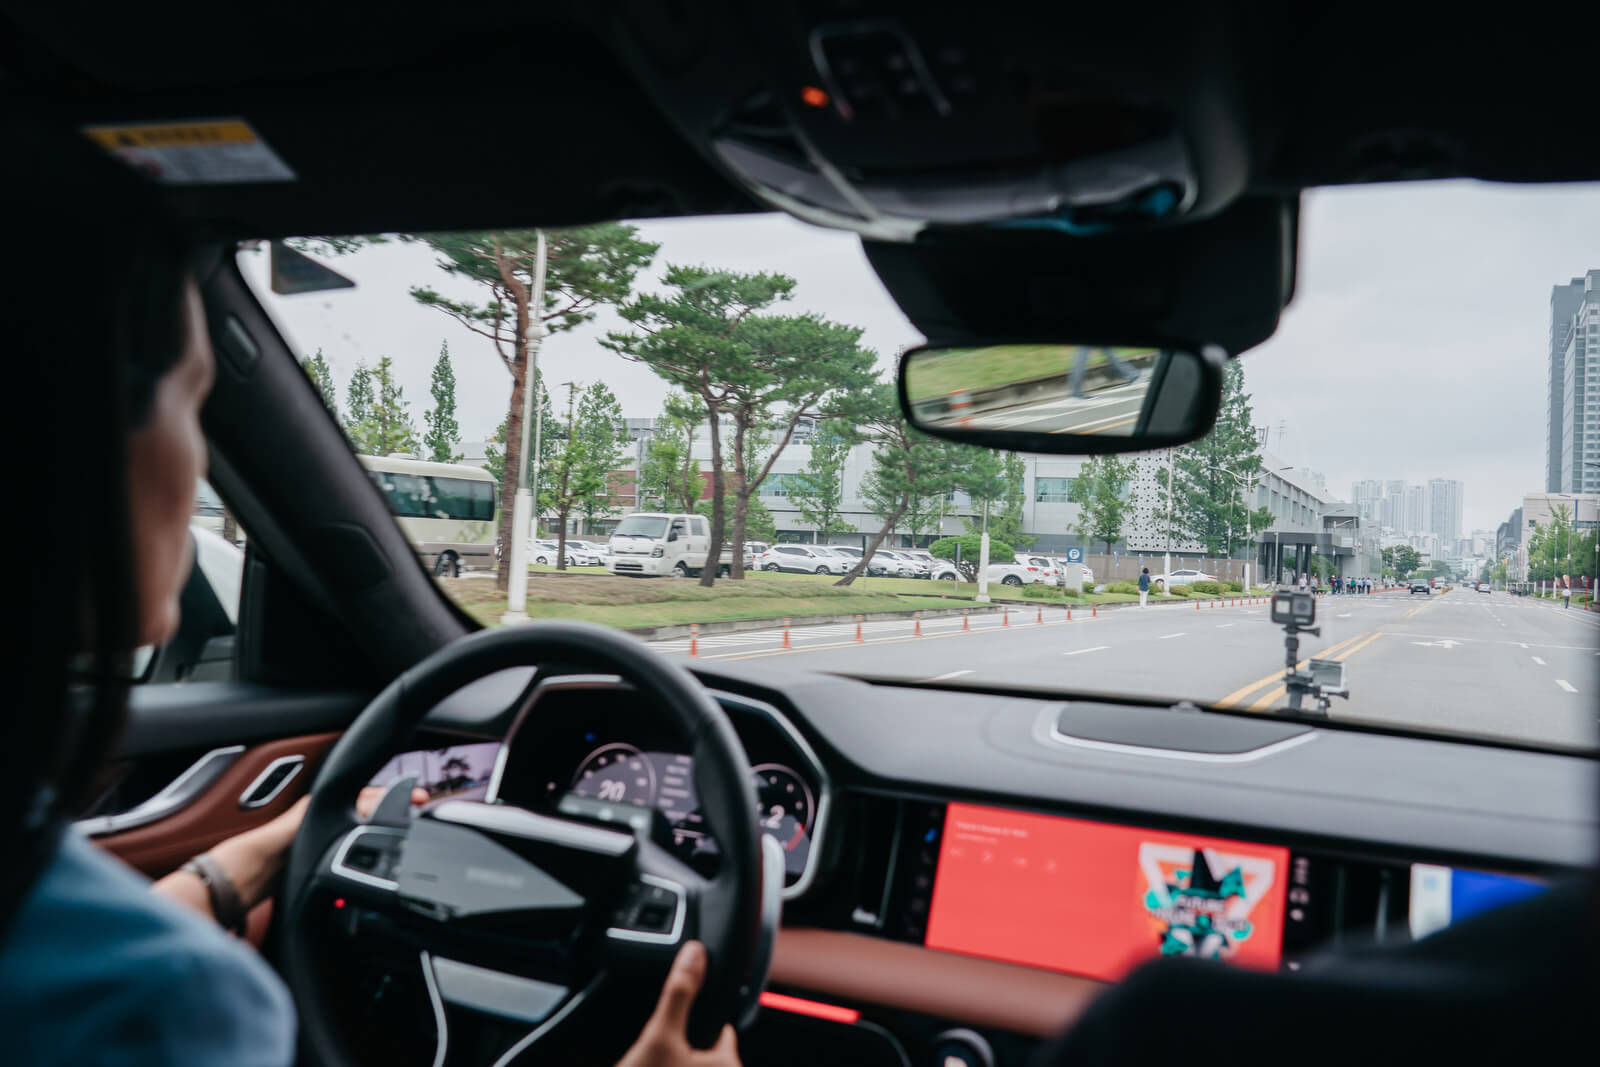 CNN's Kristie Lu Stout drives a smart vehicle equipped with Samsung's Digital Cockpit 2.0 technology.